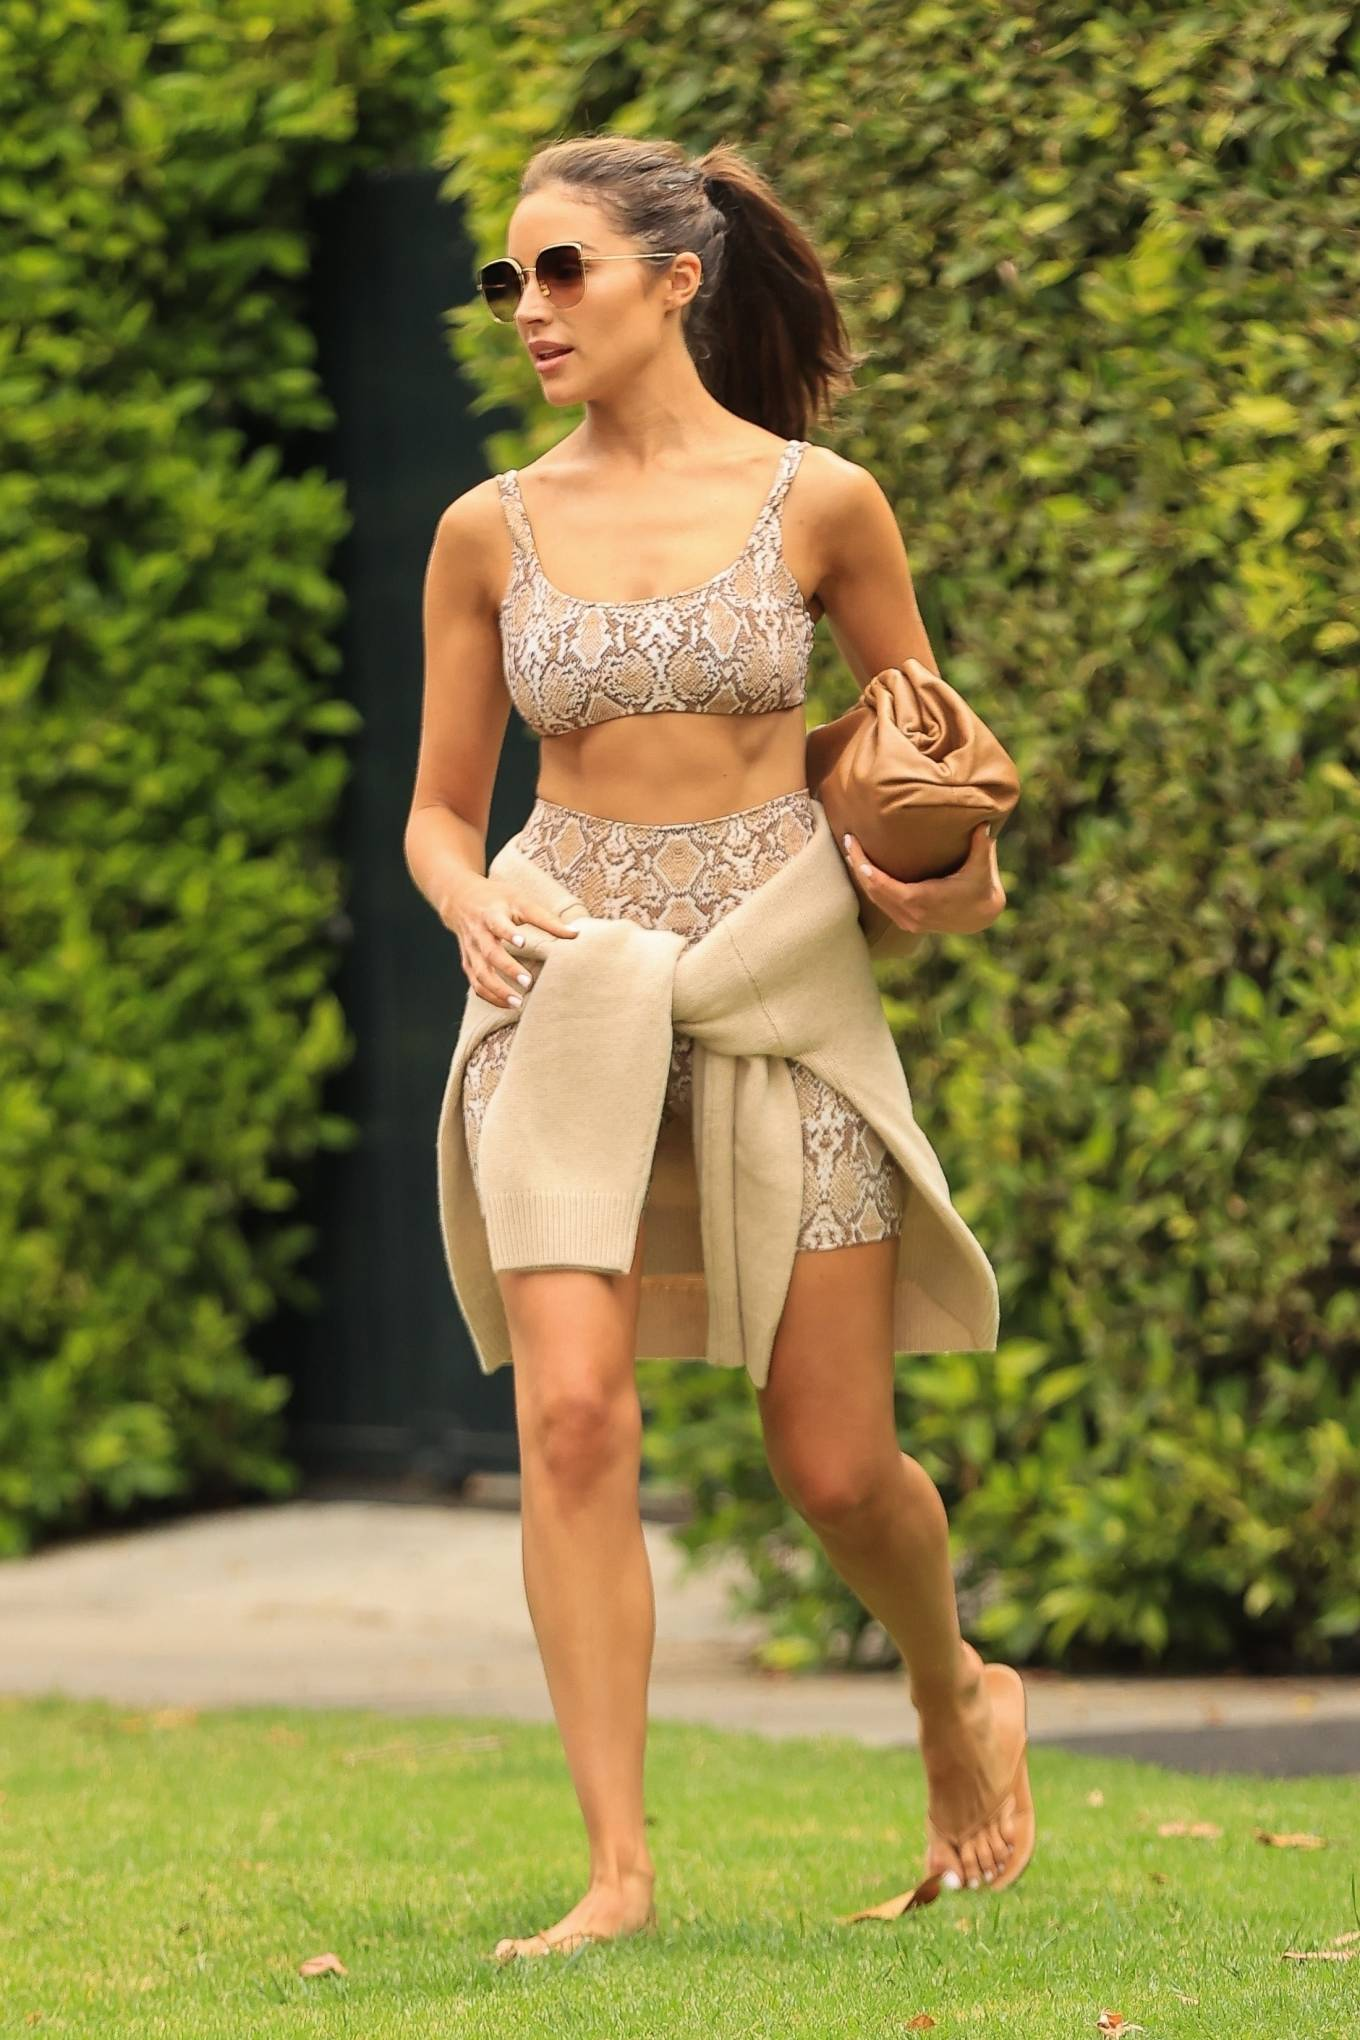 Olivia Culpo donning a fitted bikini top with pattern, a scoop neck and straps